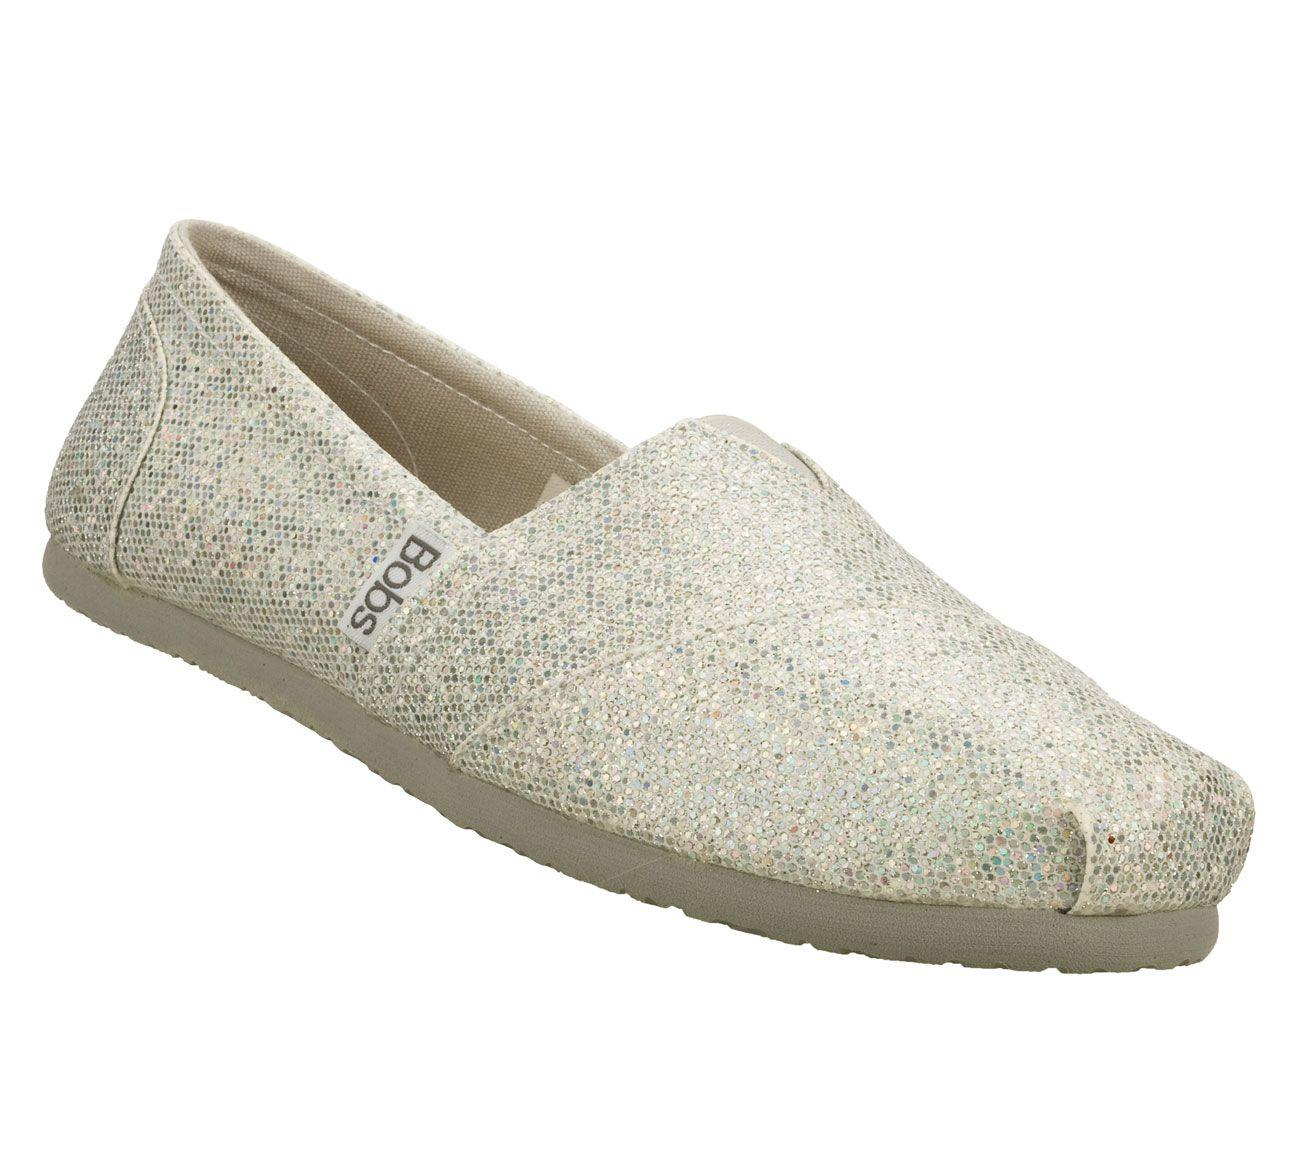 208a494f453 I know people complain about bobs just copying toms